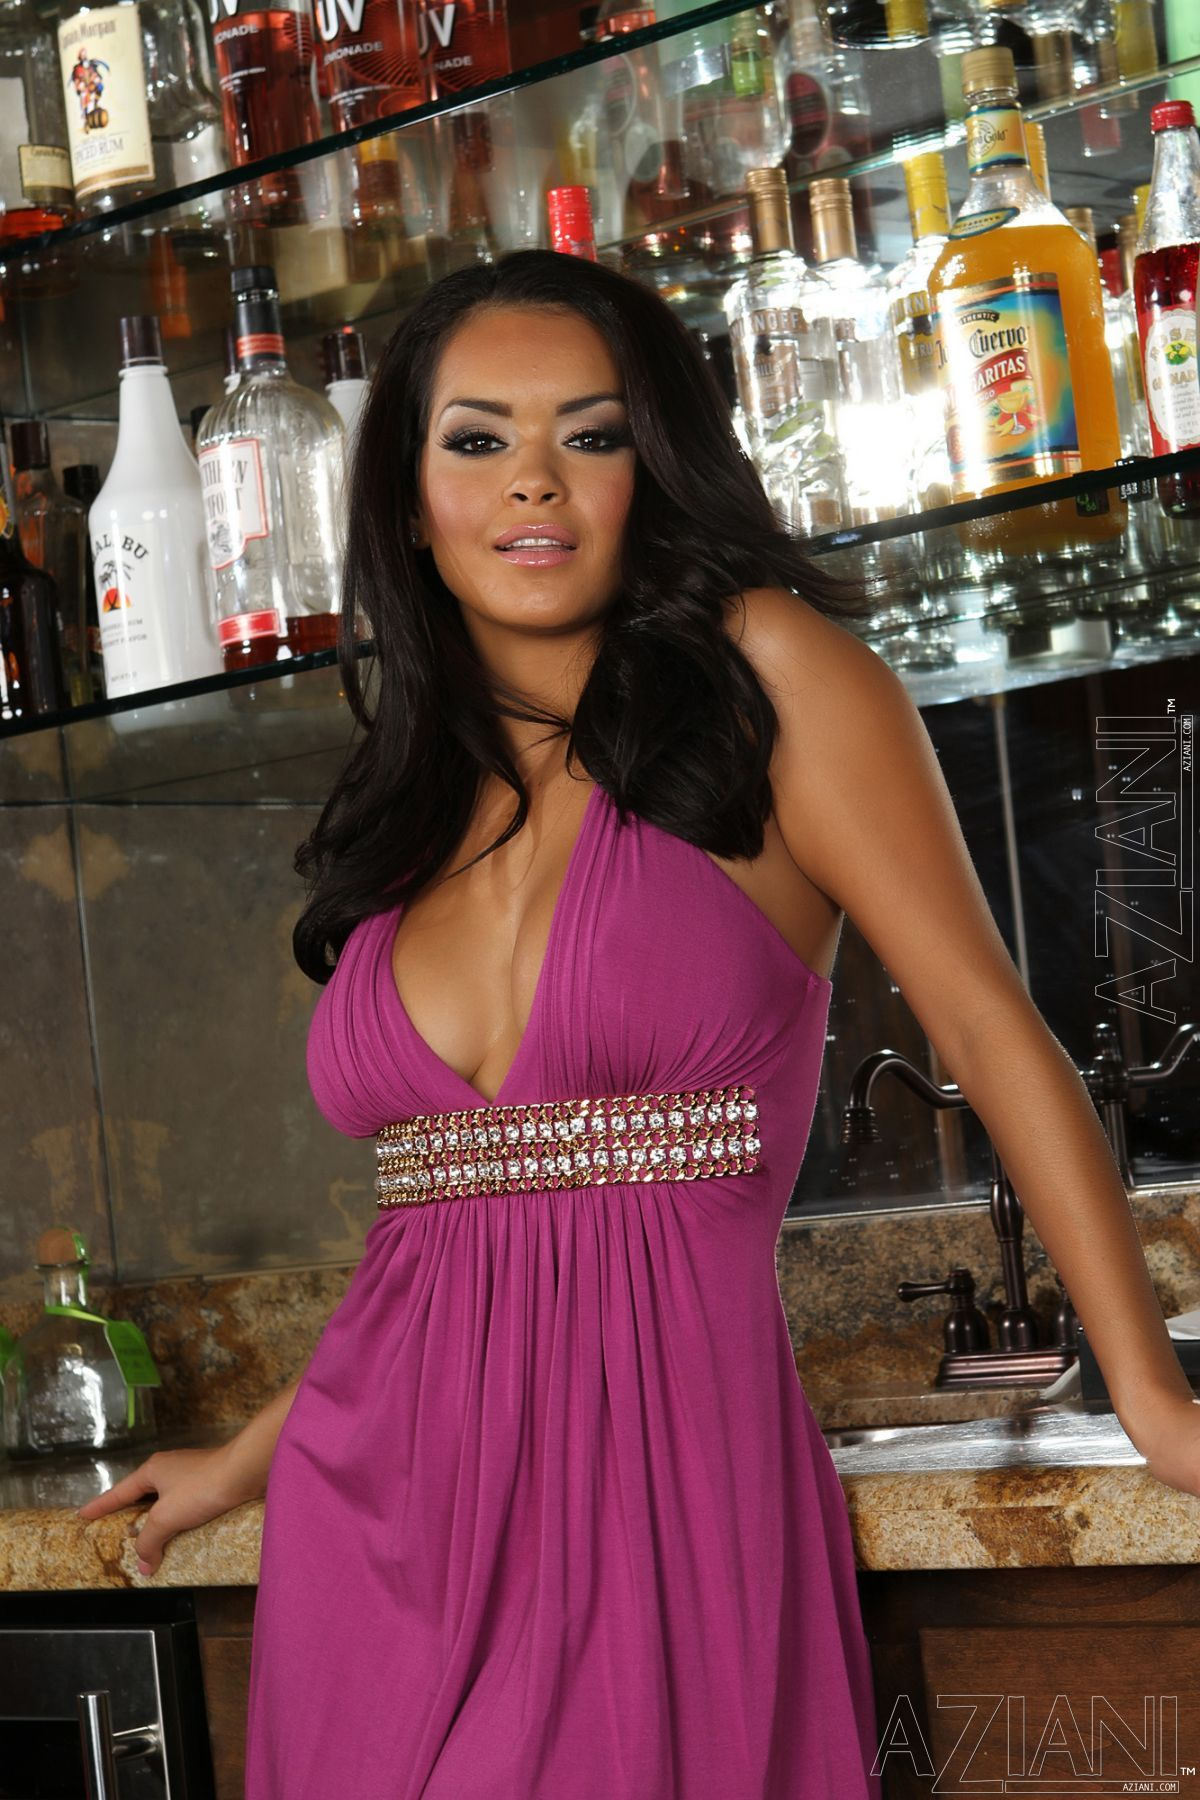 Daisy marie pictures